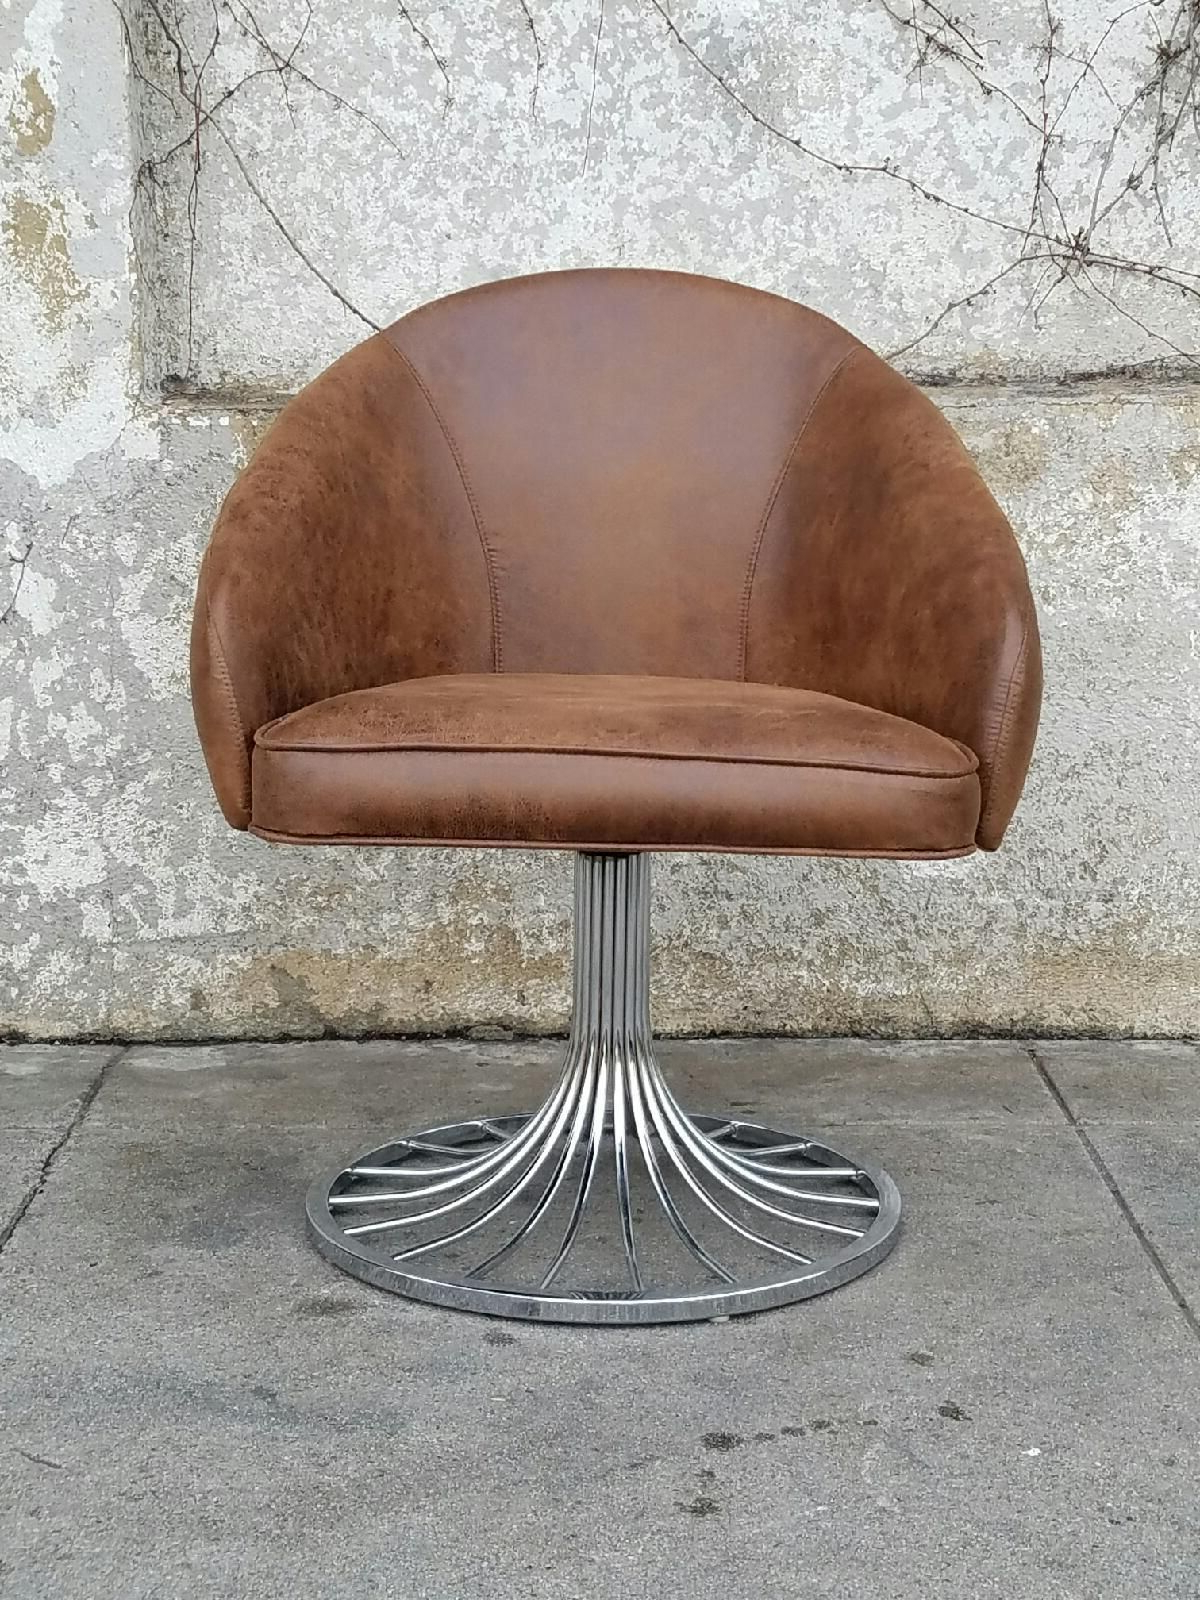 Most Popular Faux Distressed Leather Vintage Swivel Chair In Tobacco Brown Pertaining To Swivel Tobacco Leather Chairs (Gallery 13 of 20)